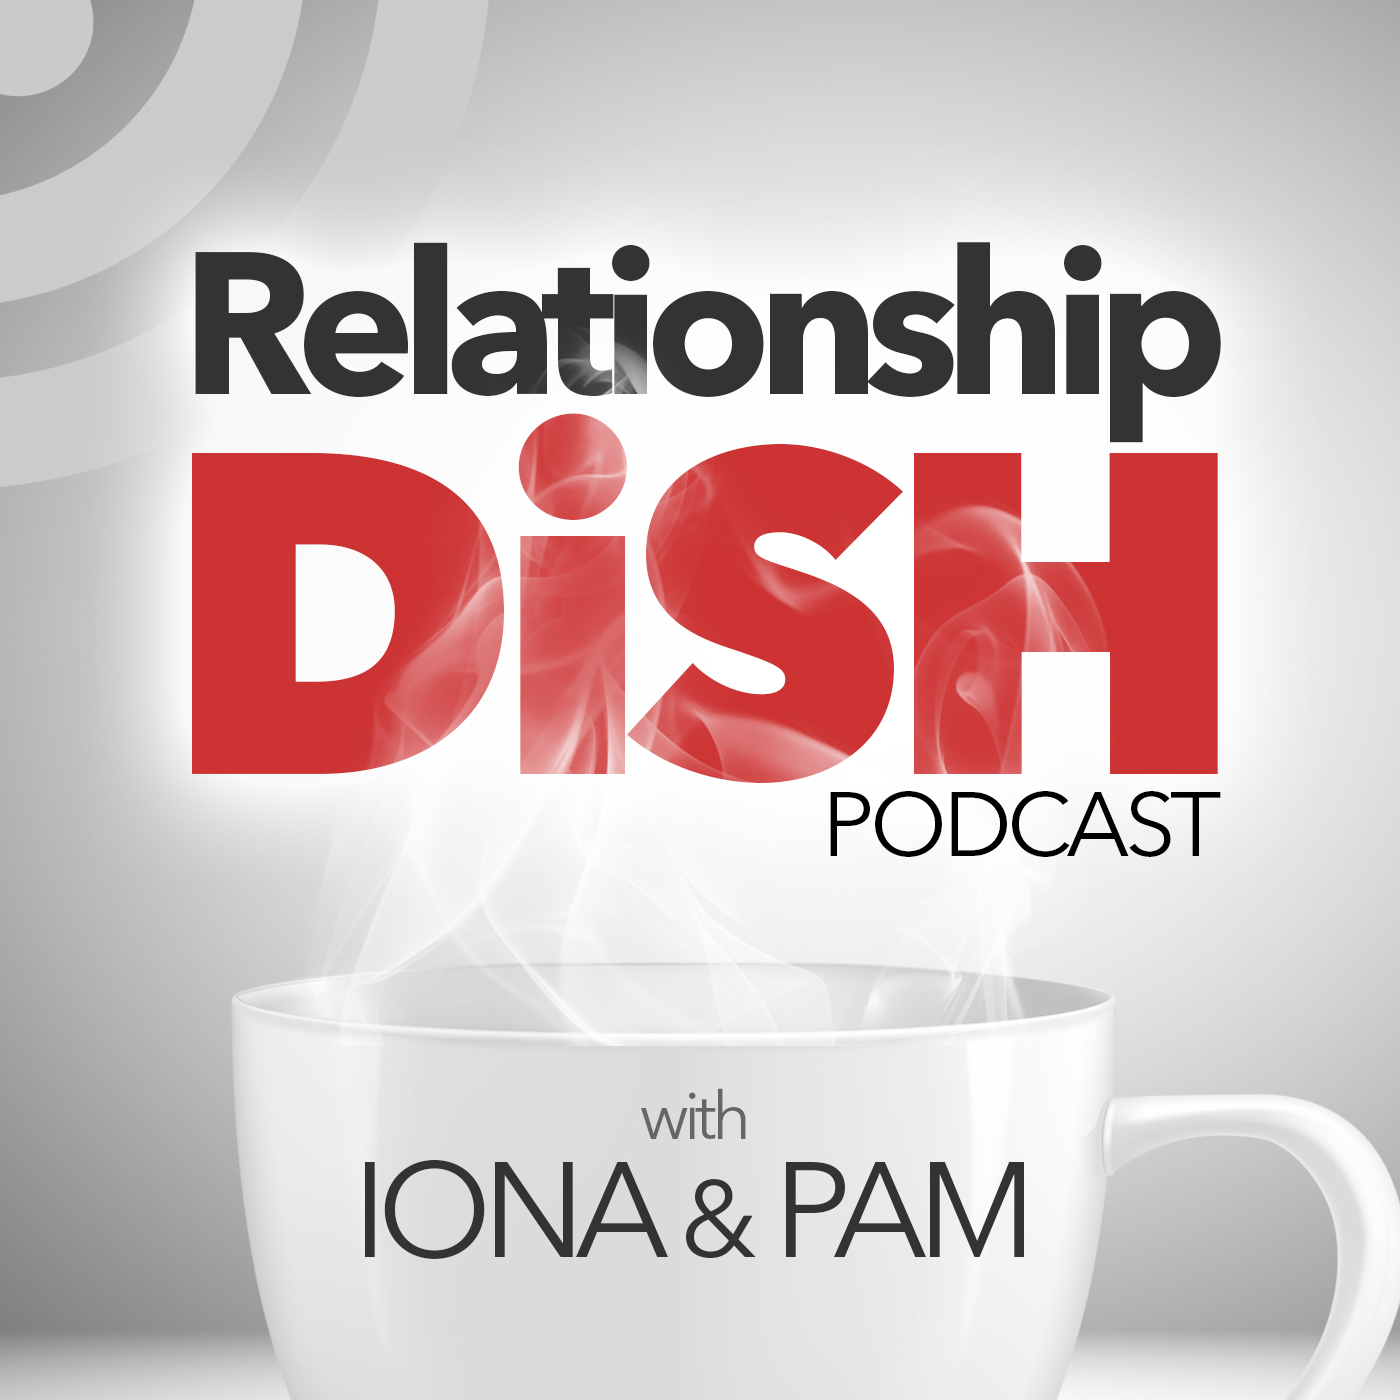 Relationship Dish - Appetizer 3 / The Balance to Stand Alone